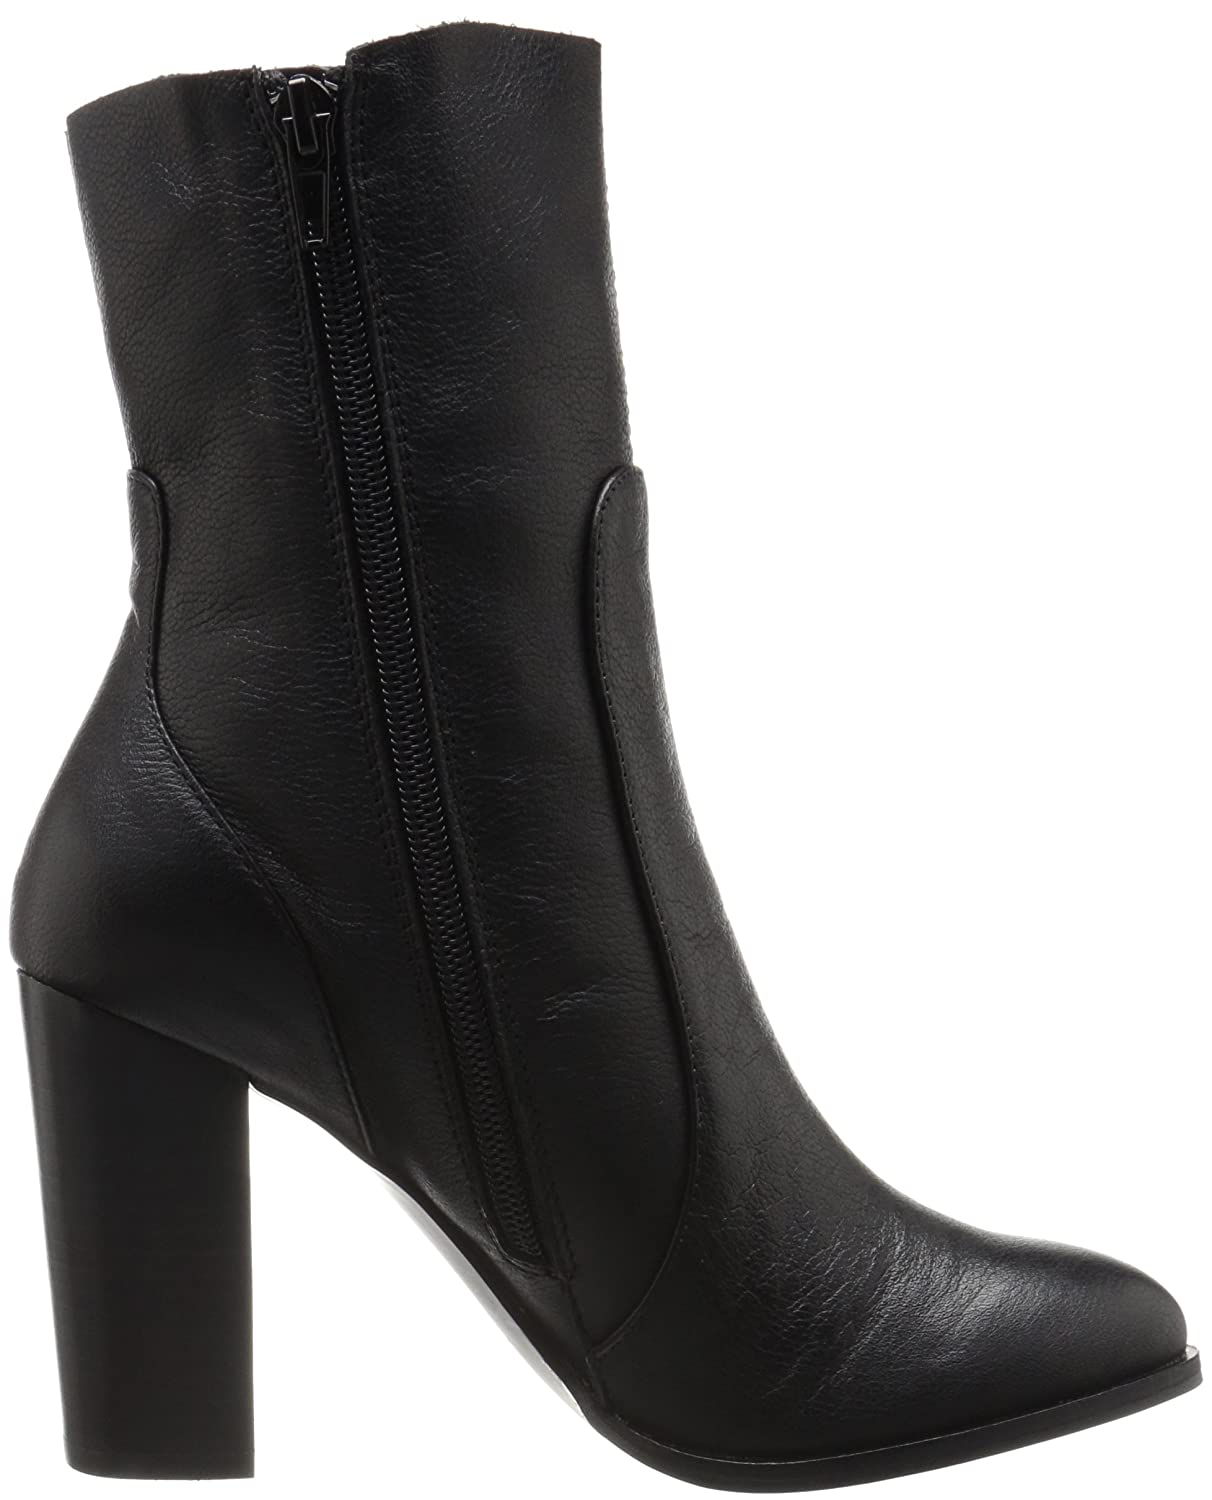 Chinese Laundry Women's Cool Kid Boot B019TOBZXS 6 B(M) US|Black Leather